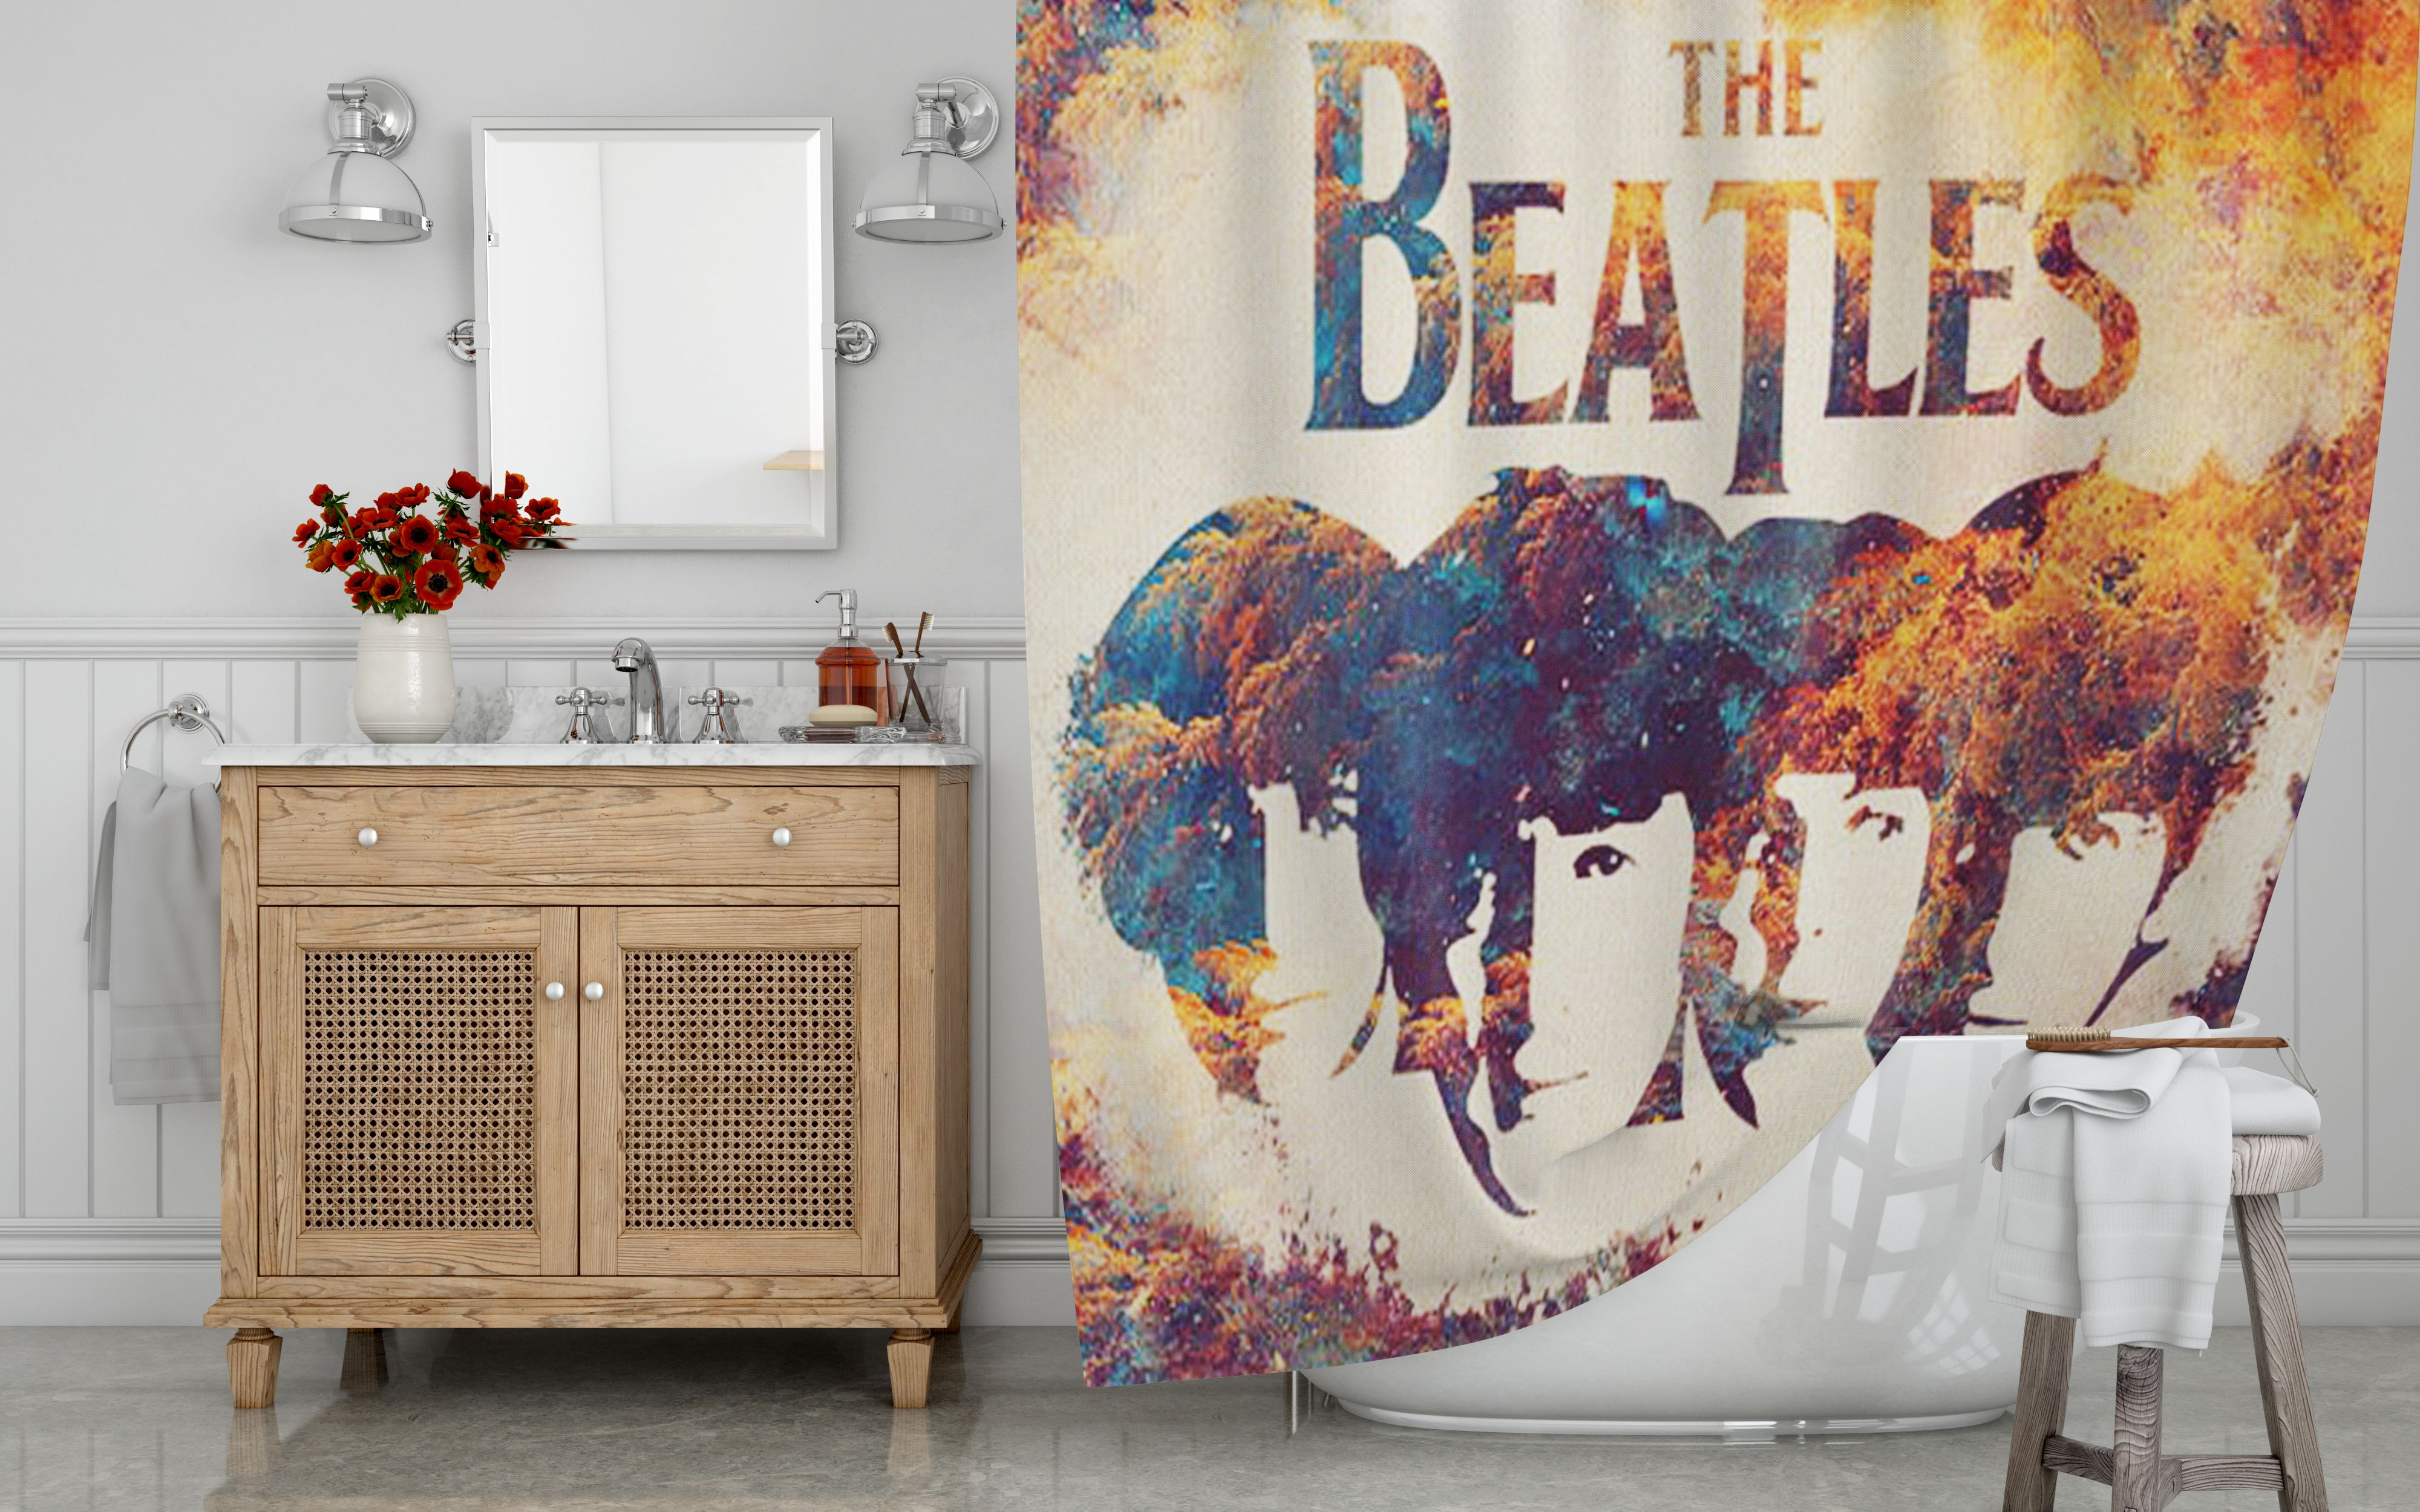 The Beatles Shower Curtain With Images Shower Curtain Decor